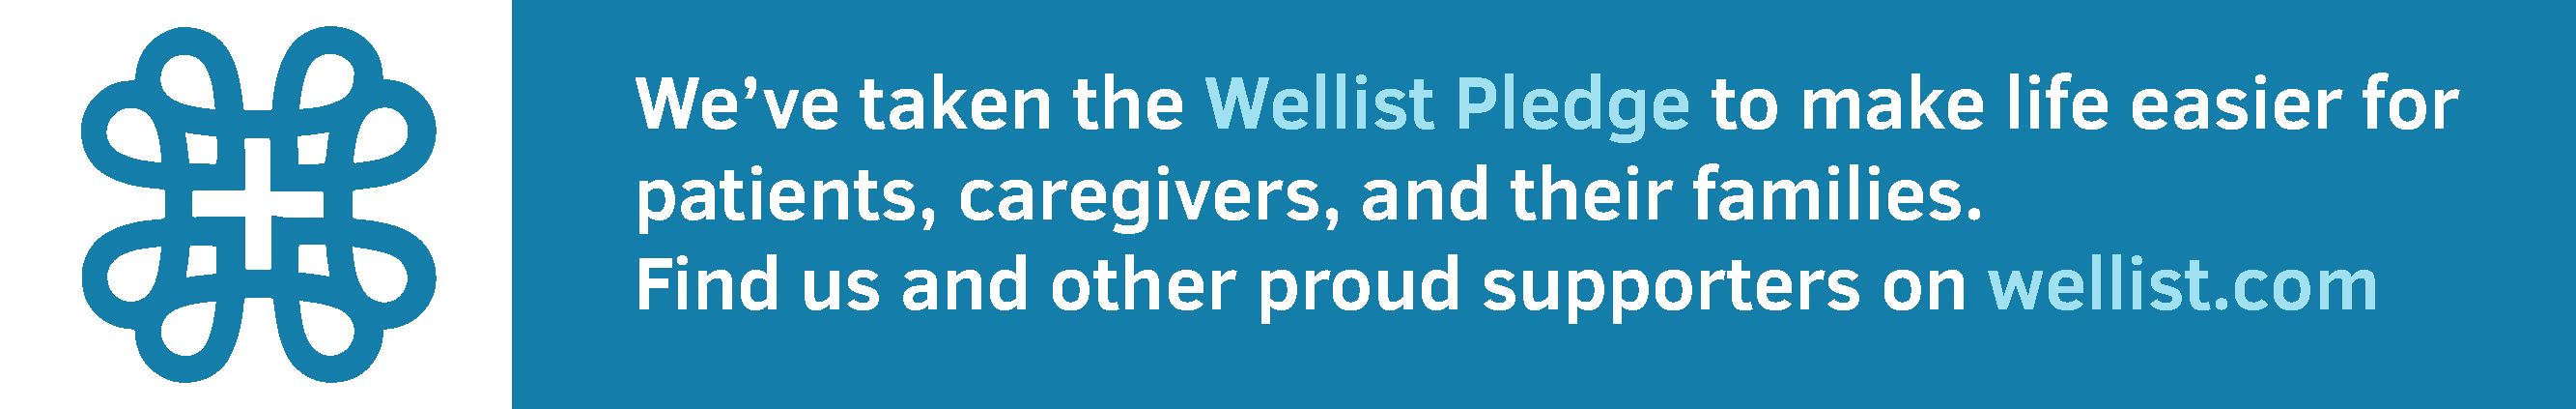 Wellist Pledge badge example